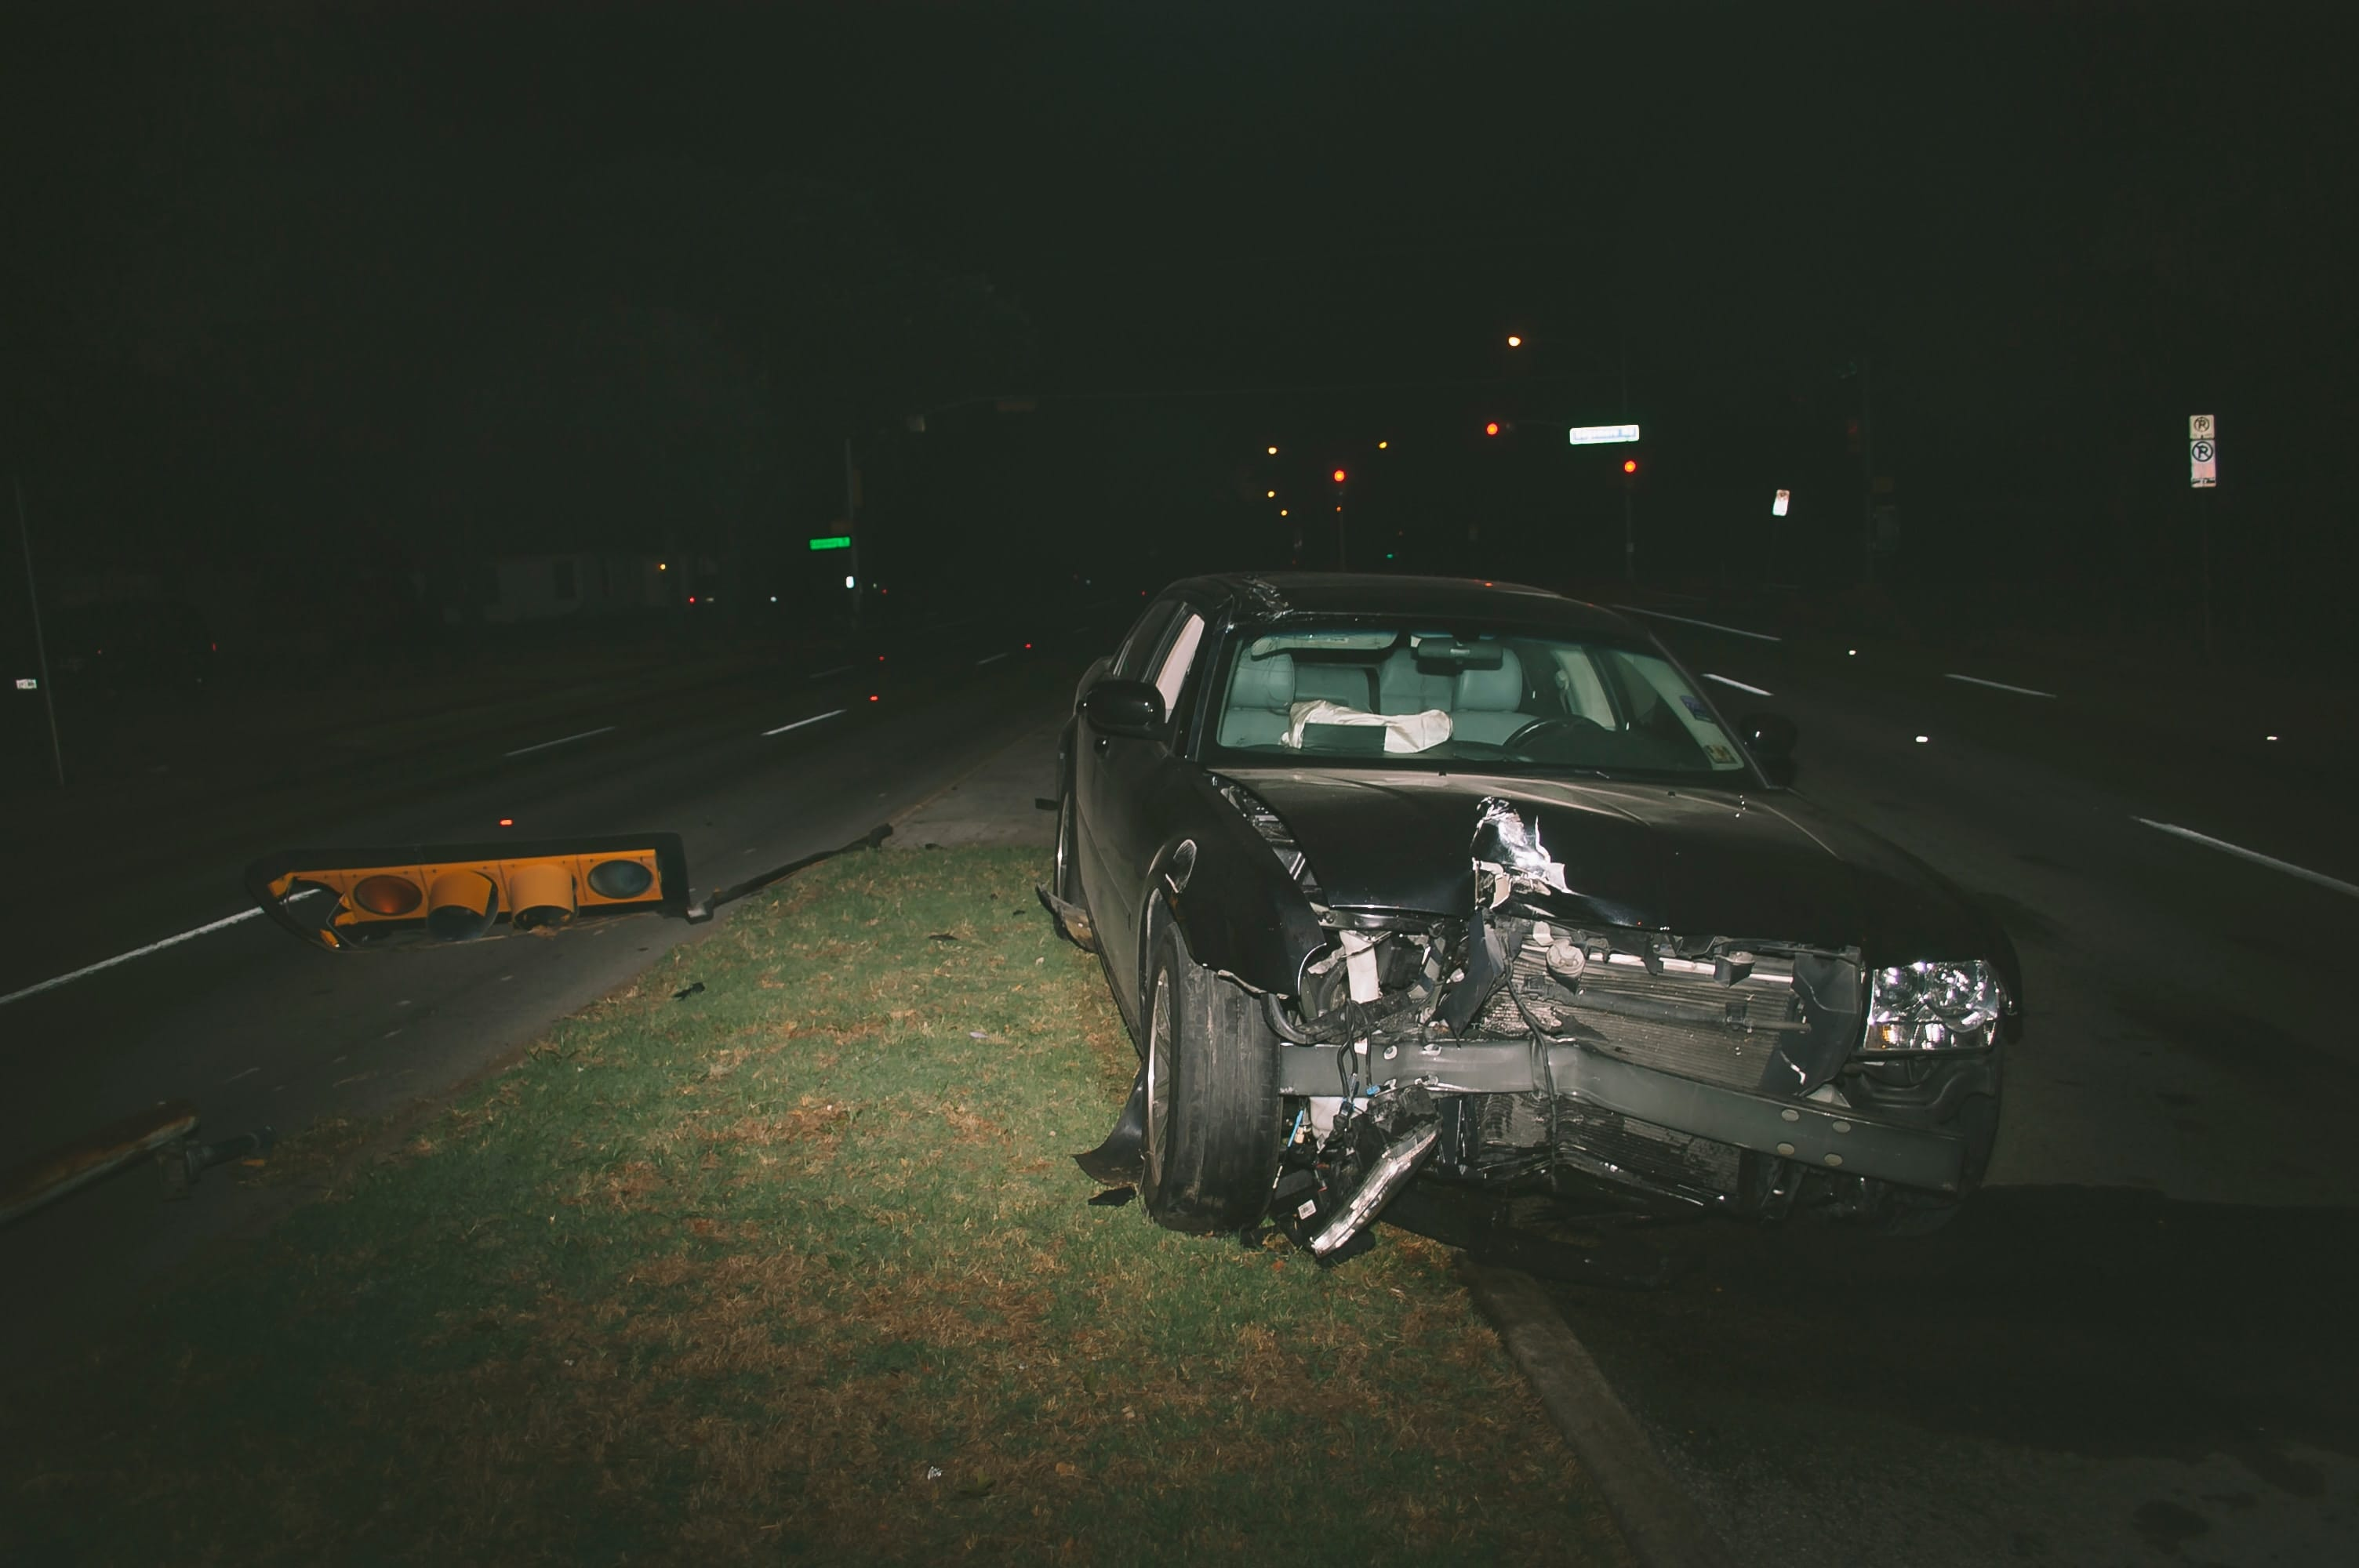 Car accident at night showing vehicle with front-end damage; image by Matthew T. Rader, via Unsplash.com.